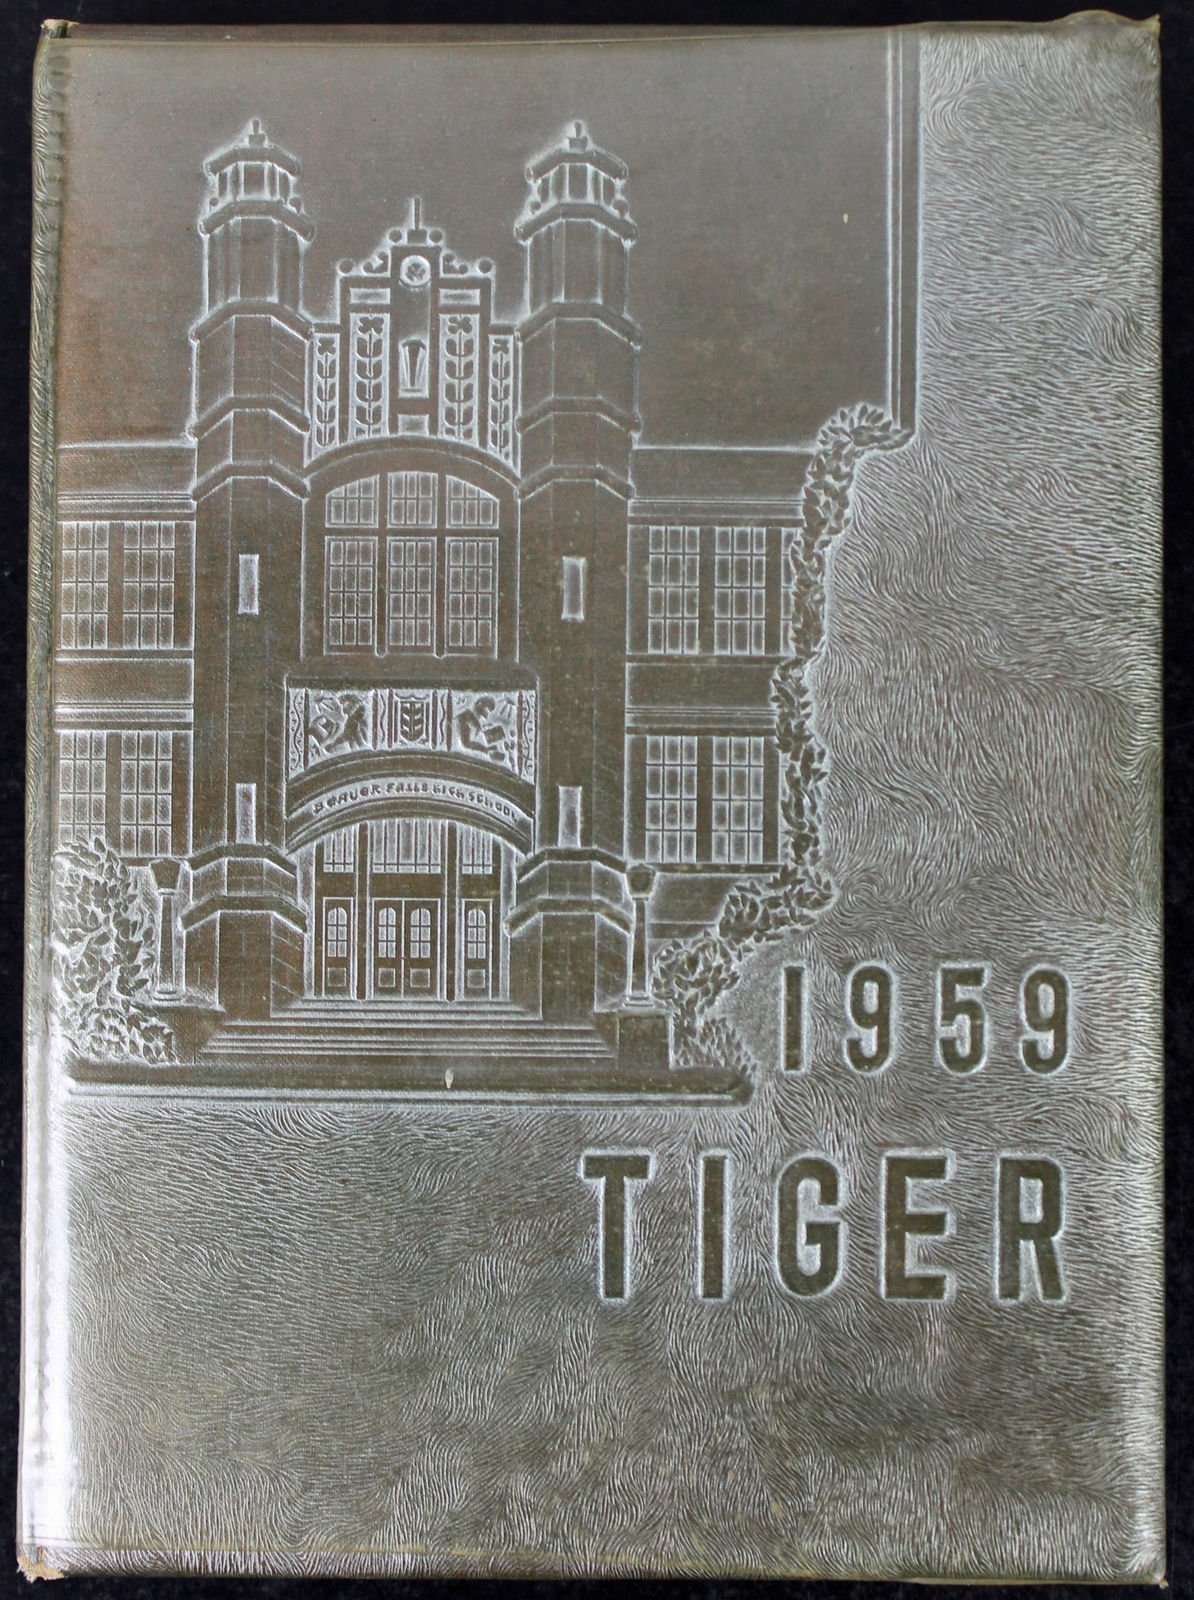 Jets Joe Namath Authentic Autographed Signed Memorabilia 1959 Tiger High School Yearbook PSA/DNA #Z05331